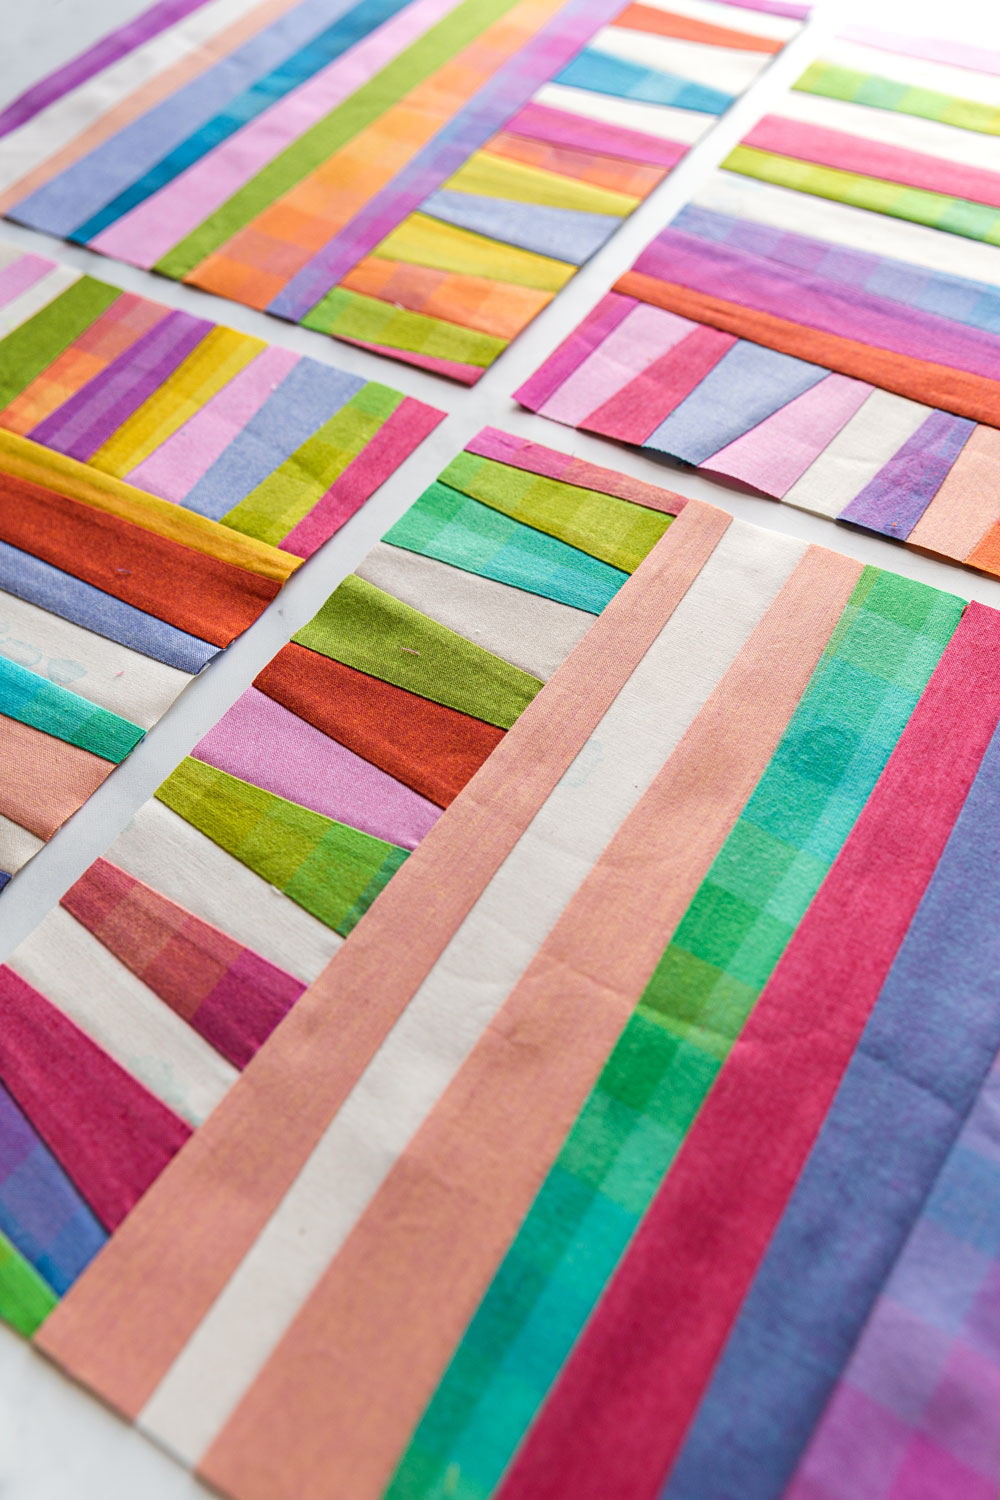 The Shine quilt sew along includes lots of added tips and videos to help you make this modern quilt pattern. This fat quarter quilt pattern is beginner friendly and focuses on improv sewing. suzyquilts.com #fatquarterquilt #improvquilting